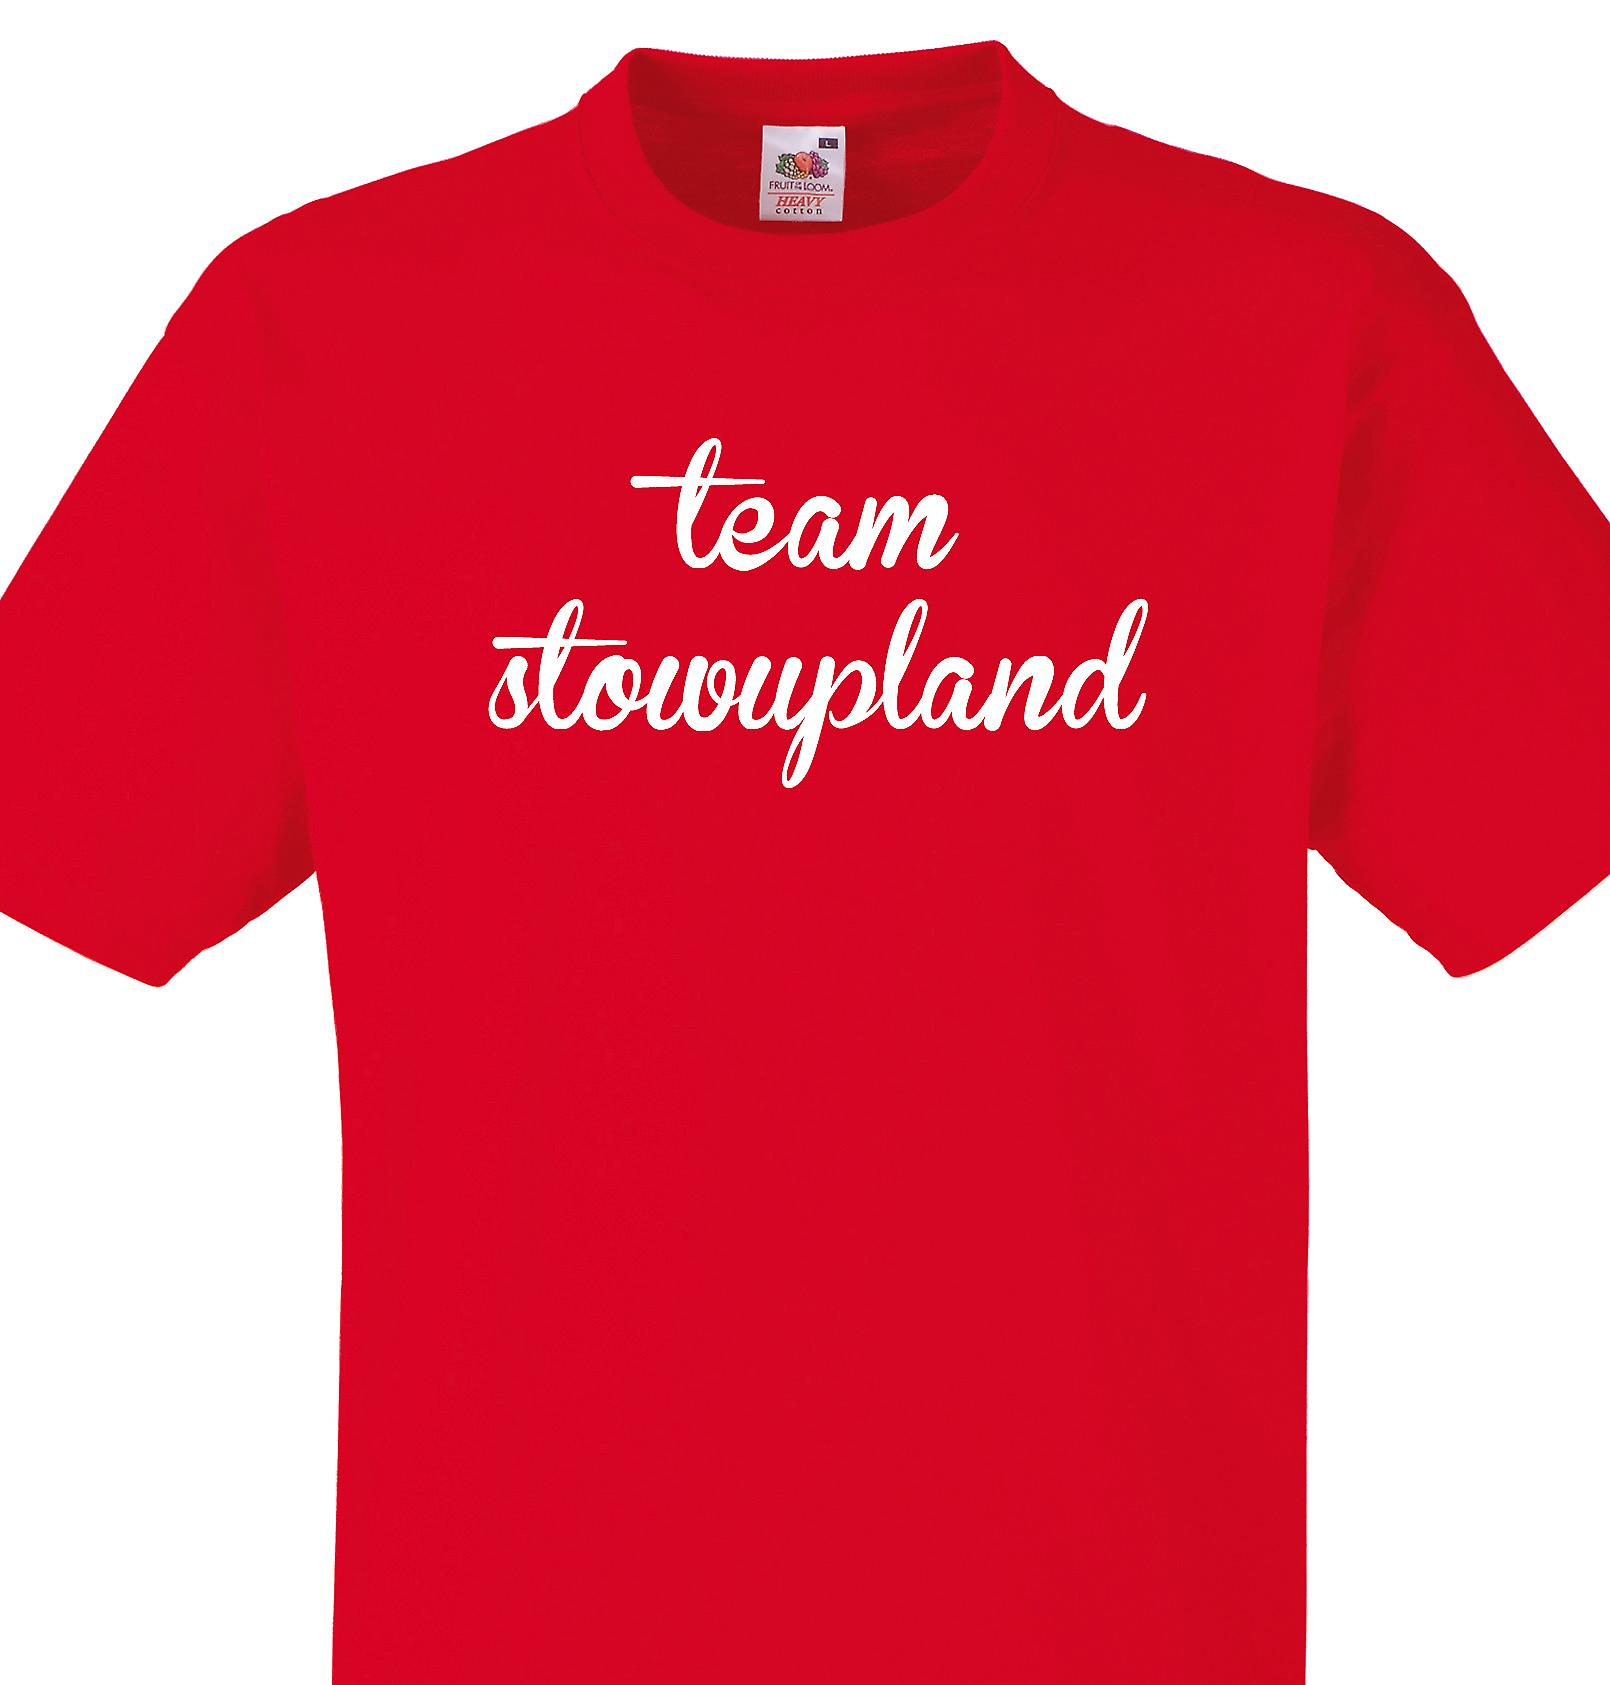 Team Stowupland Red T shirt